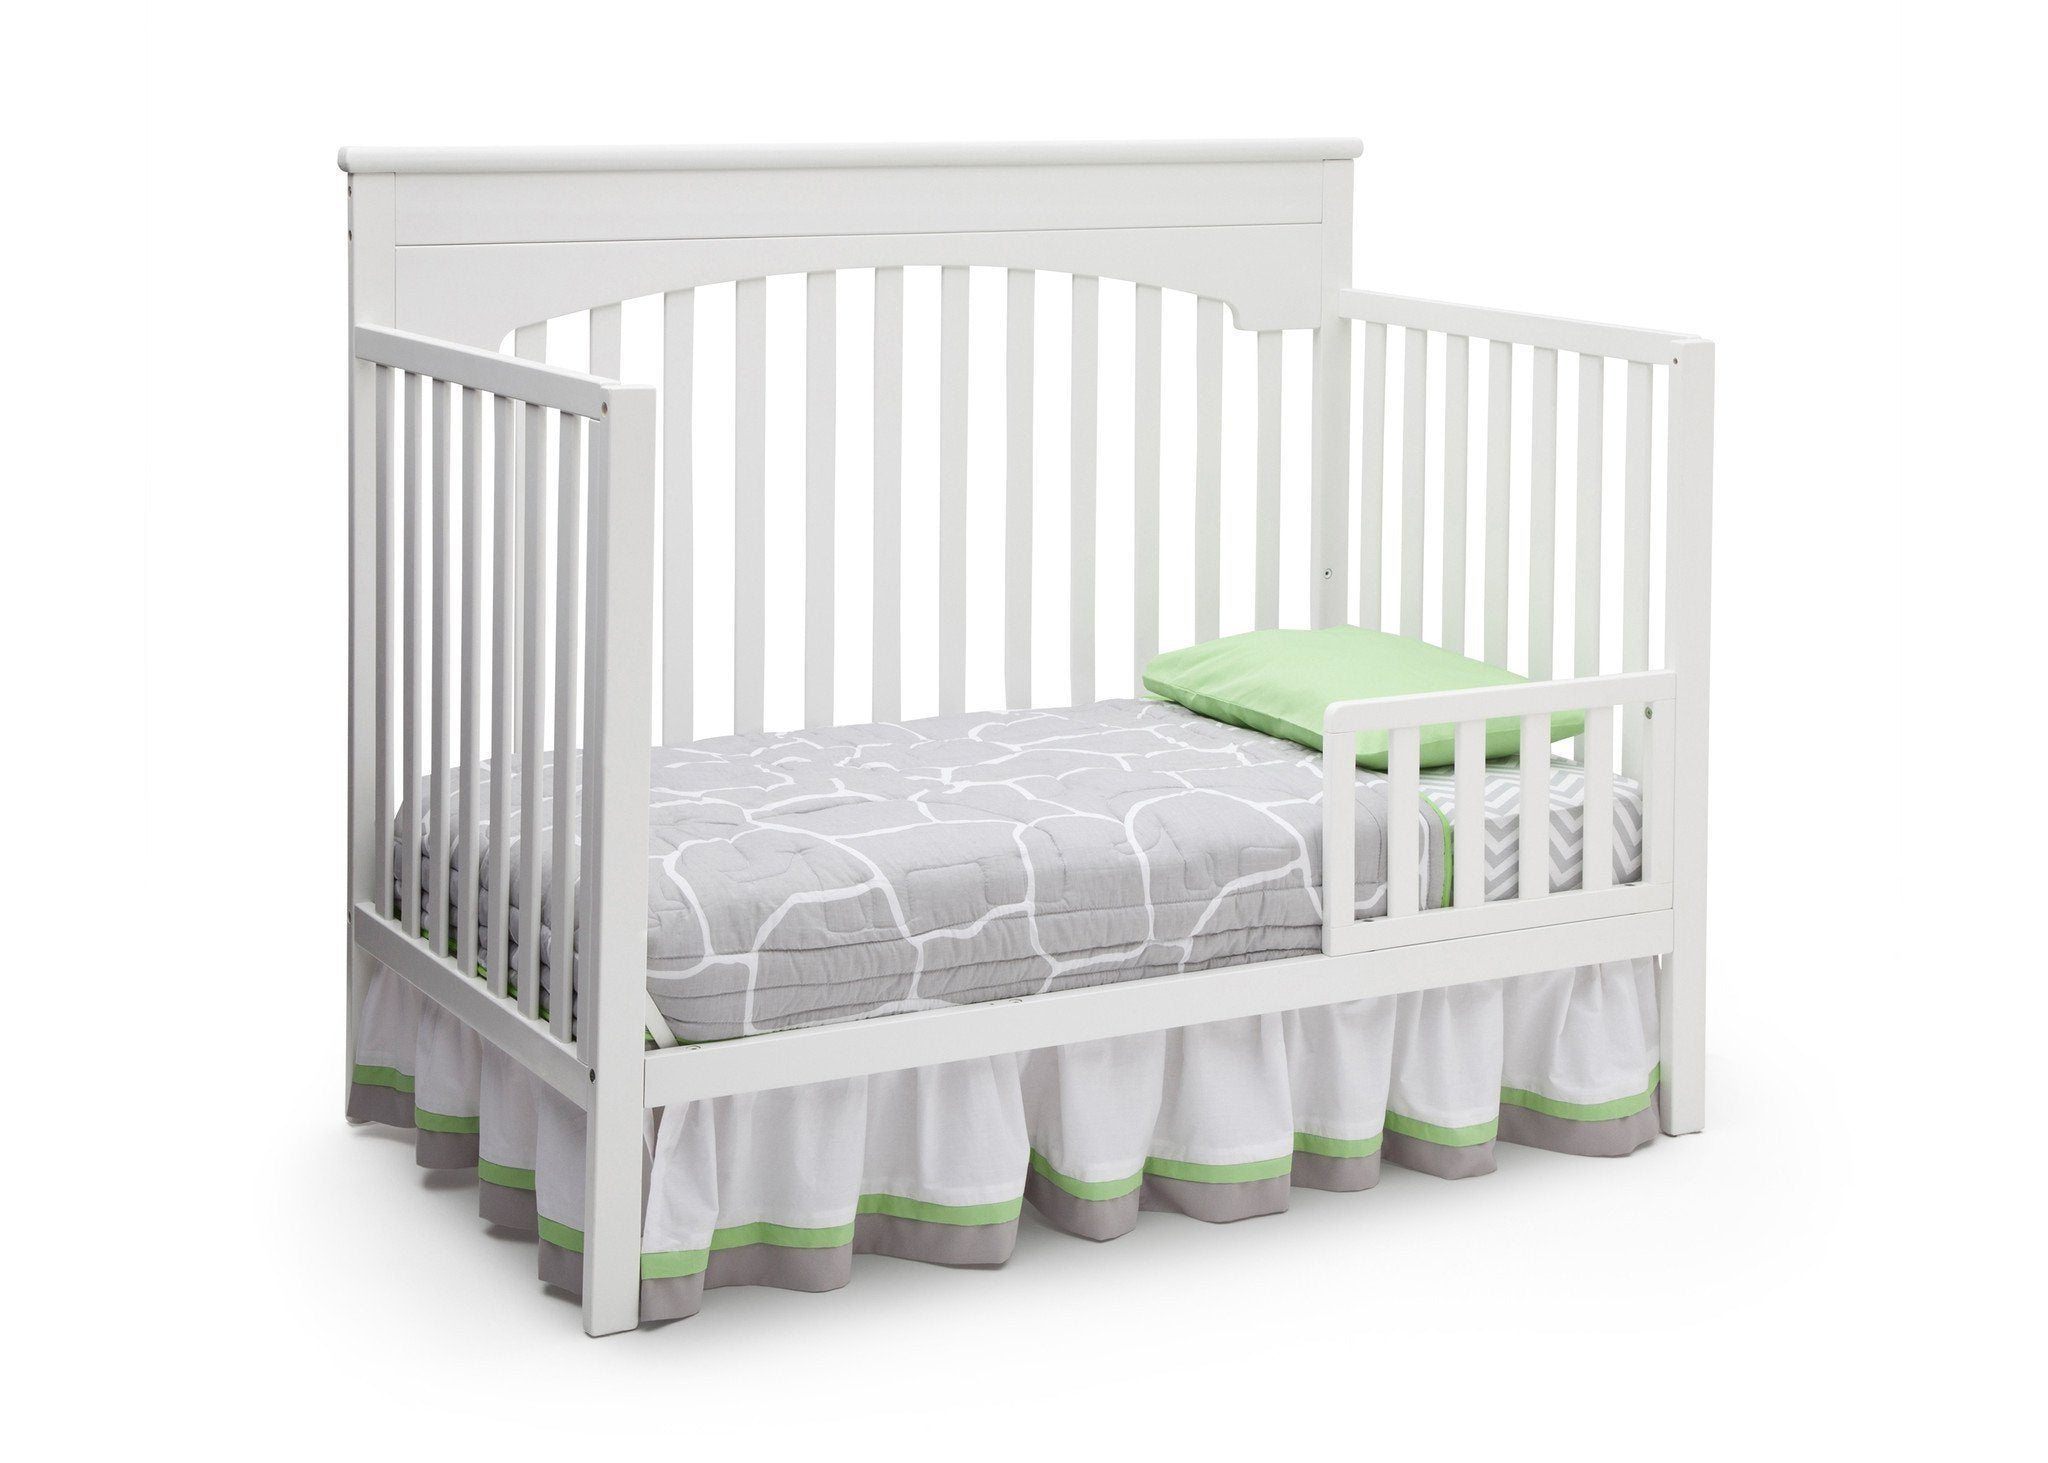 Delta Children White (100) Layla 4-in-1 Crib, Toddler Bed Conversion a4a